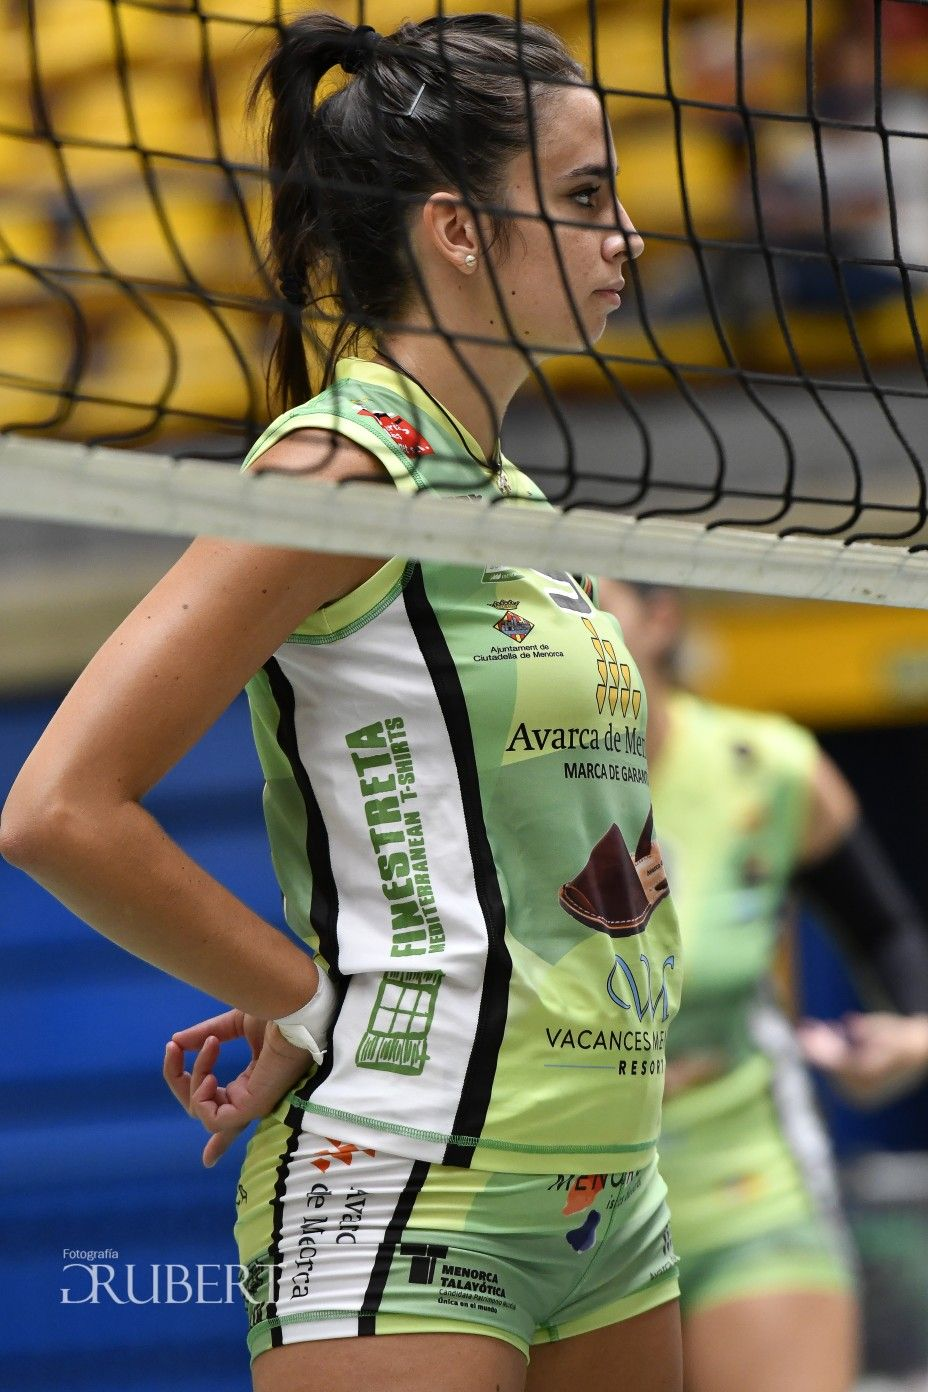 Pin By Keith Lender On Sports Women Volleyball Volleyball Players Female Volleyball Players